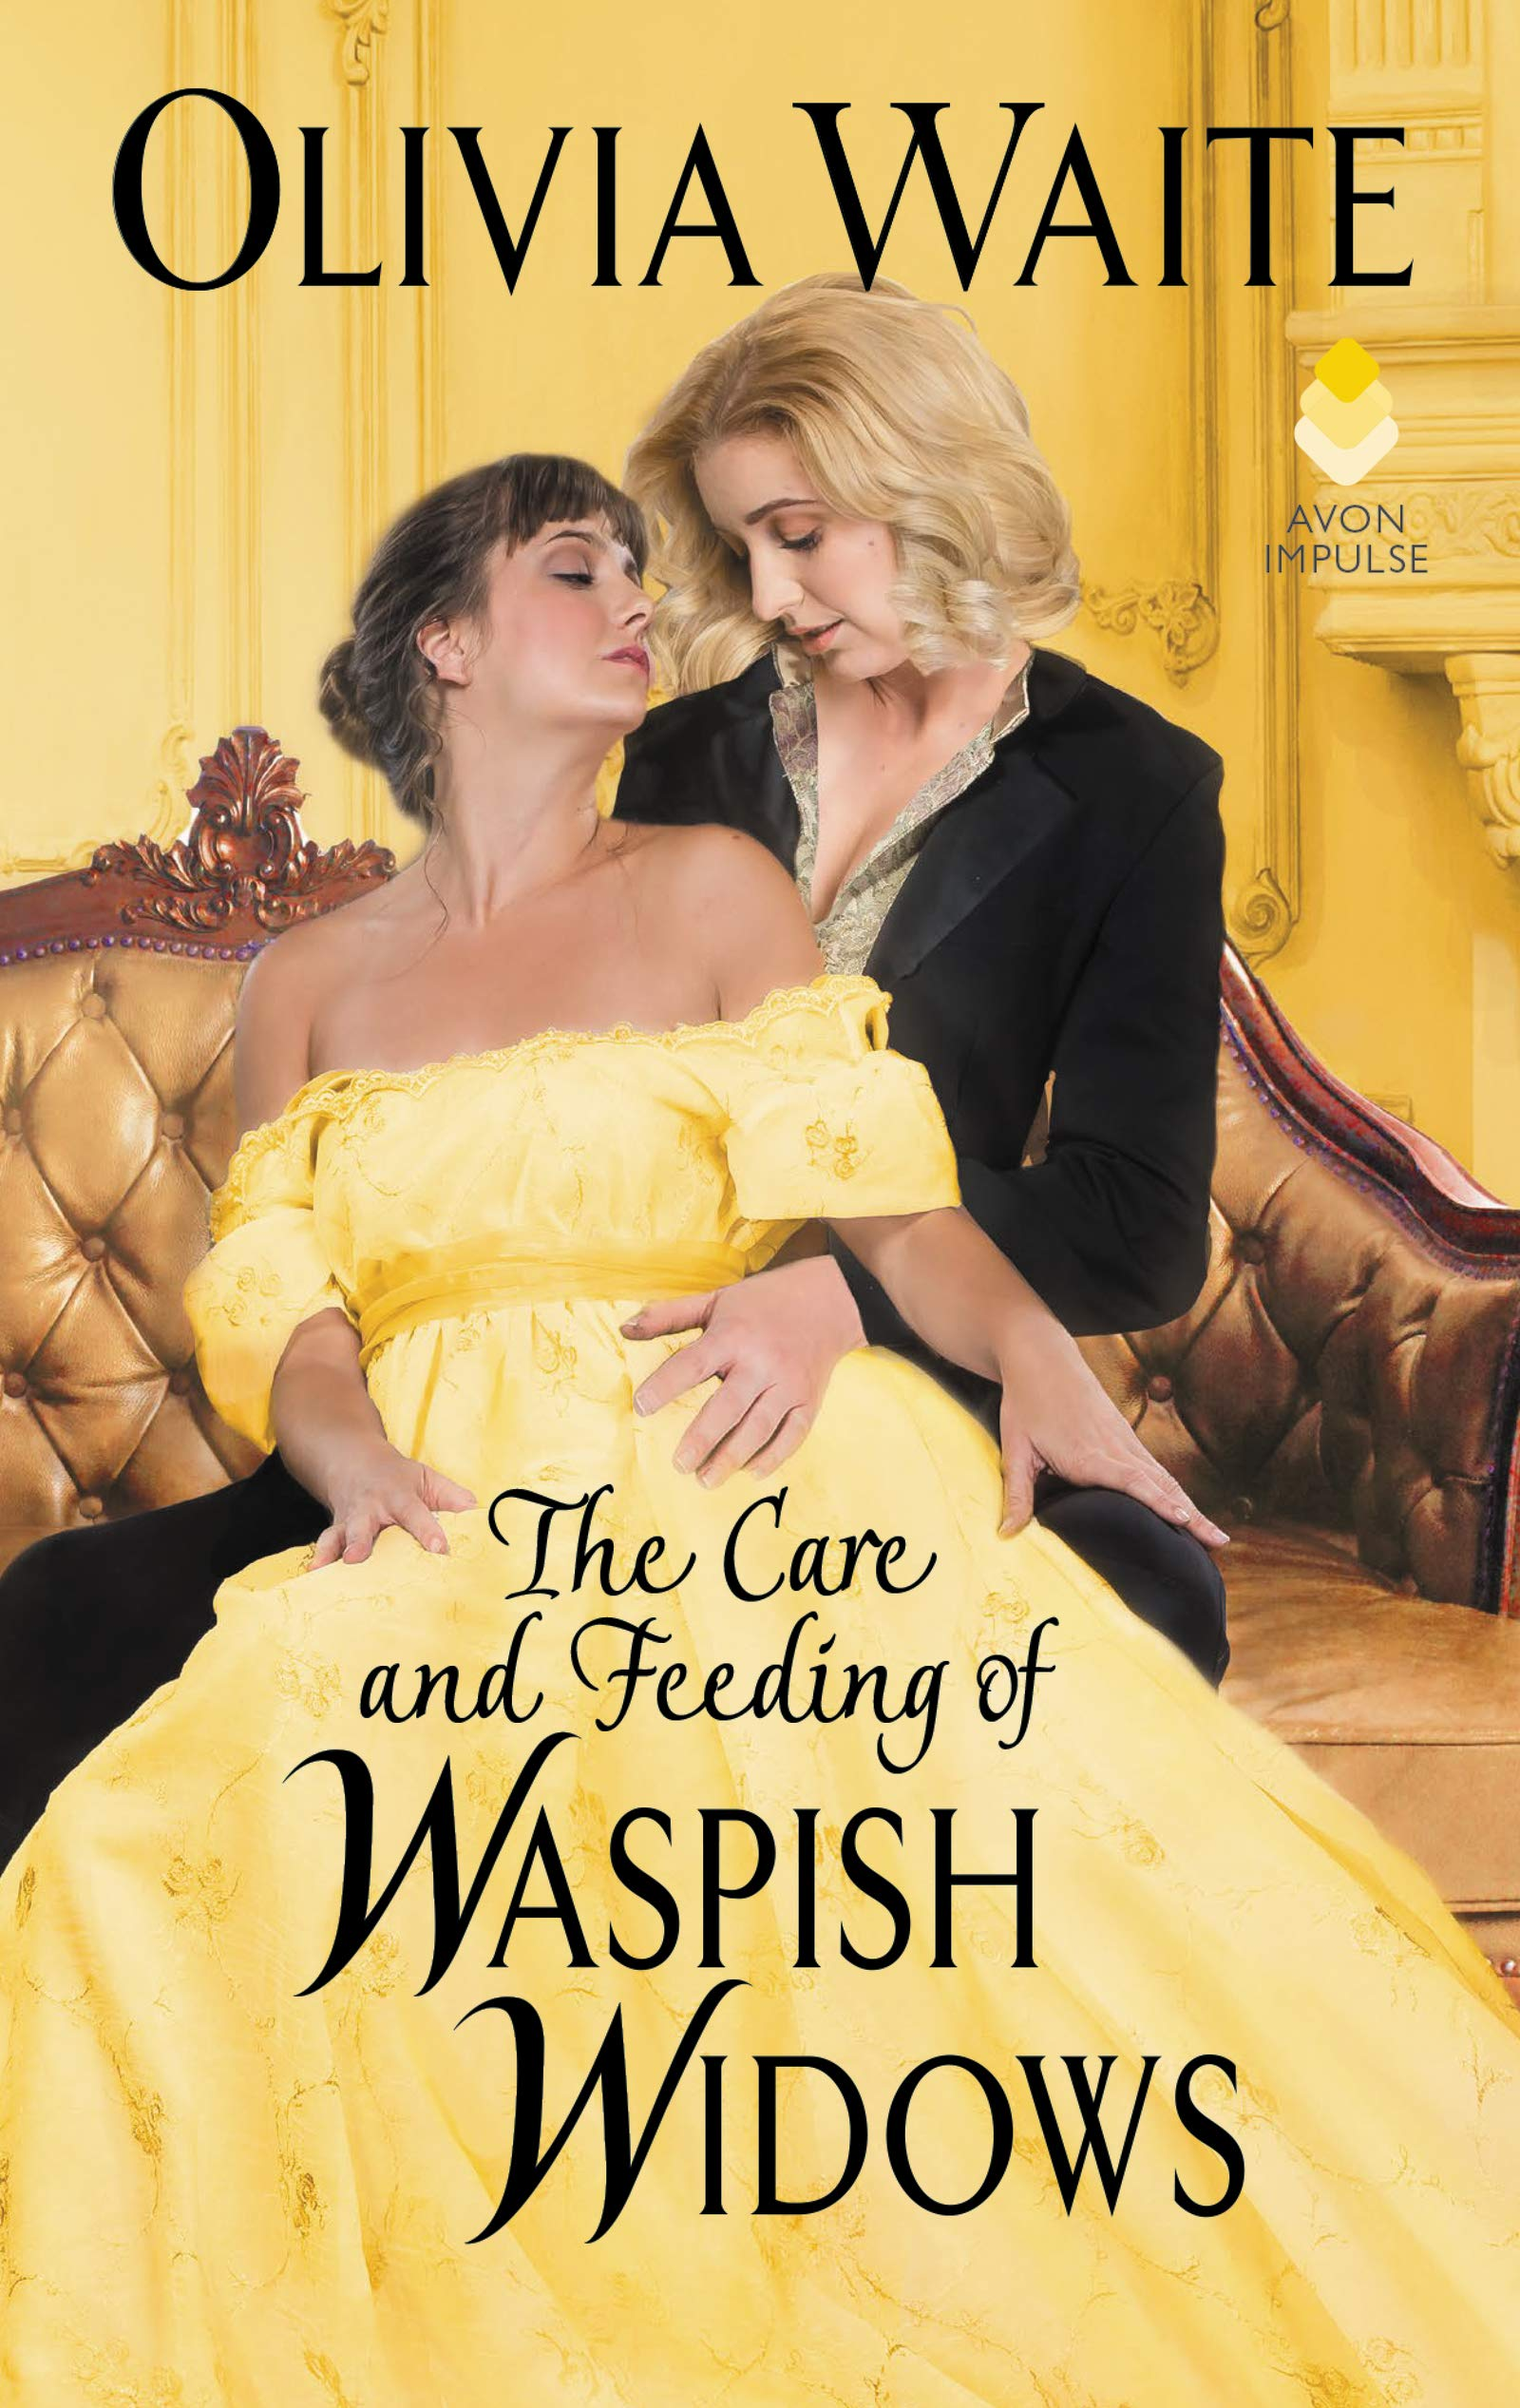 Image of the book cover that has two women, one wearing a long golden dress and the other woman has a blazer type suit, both are looking at each other with their eyes closed.